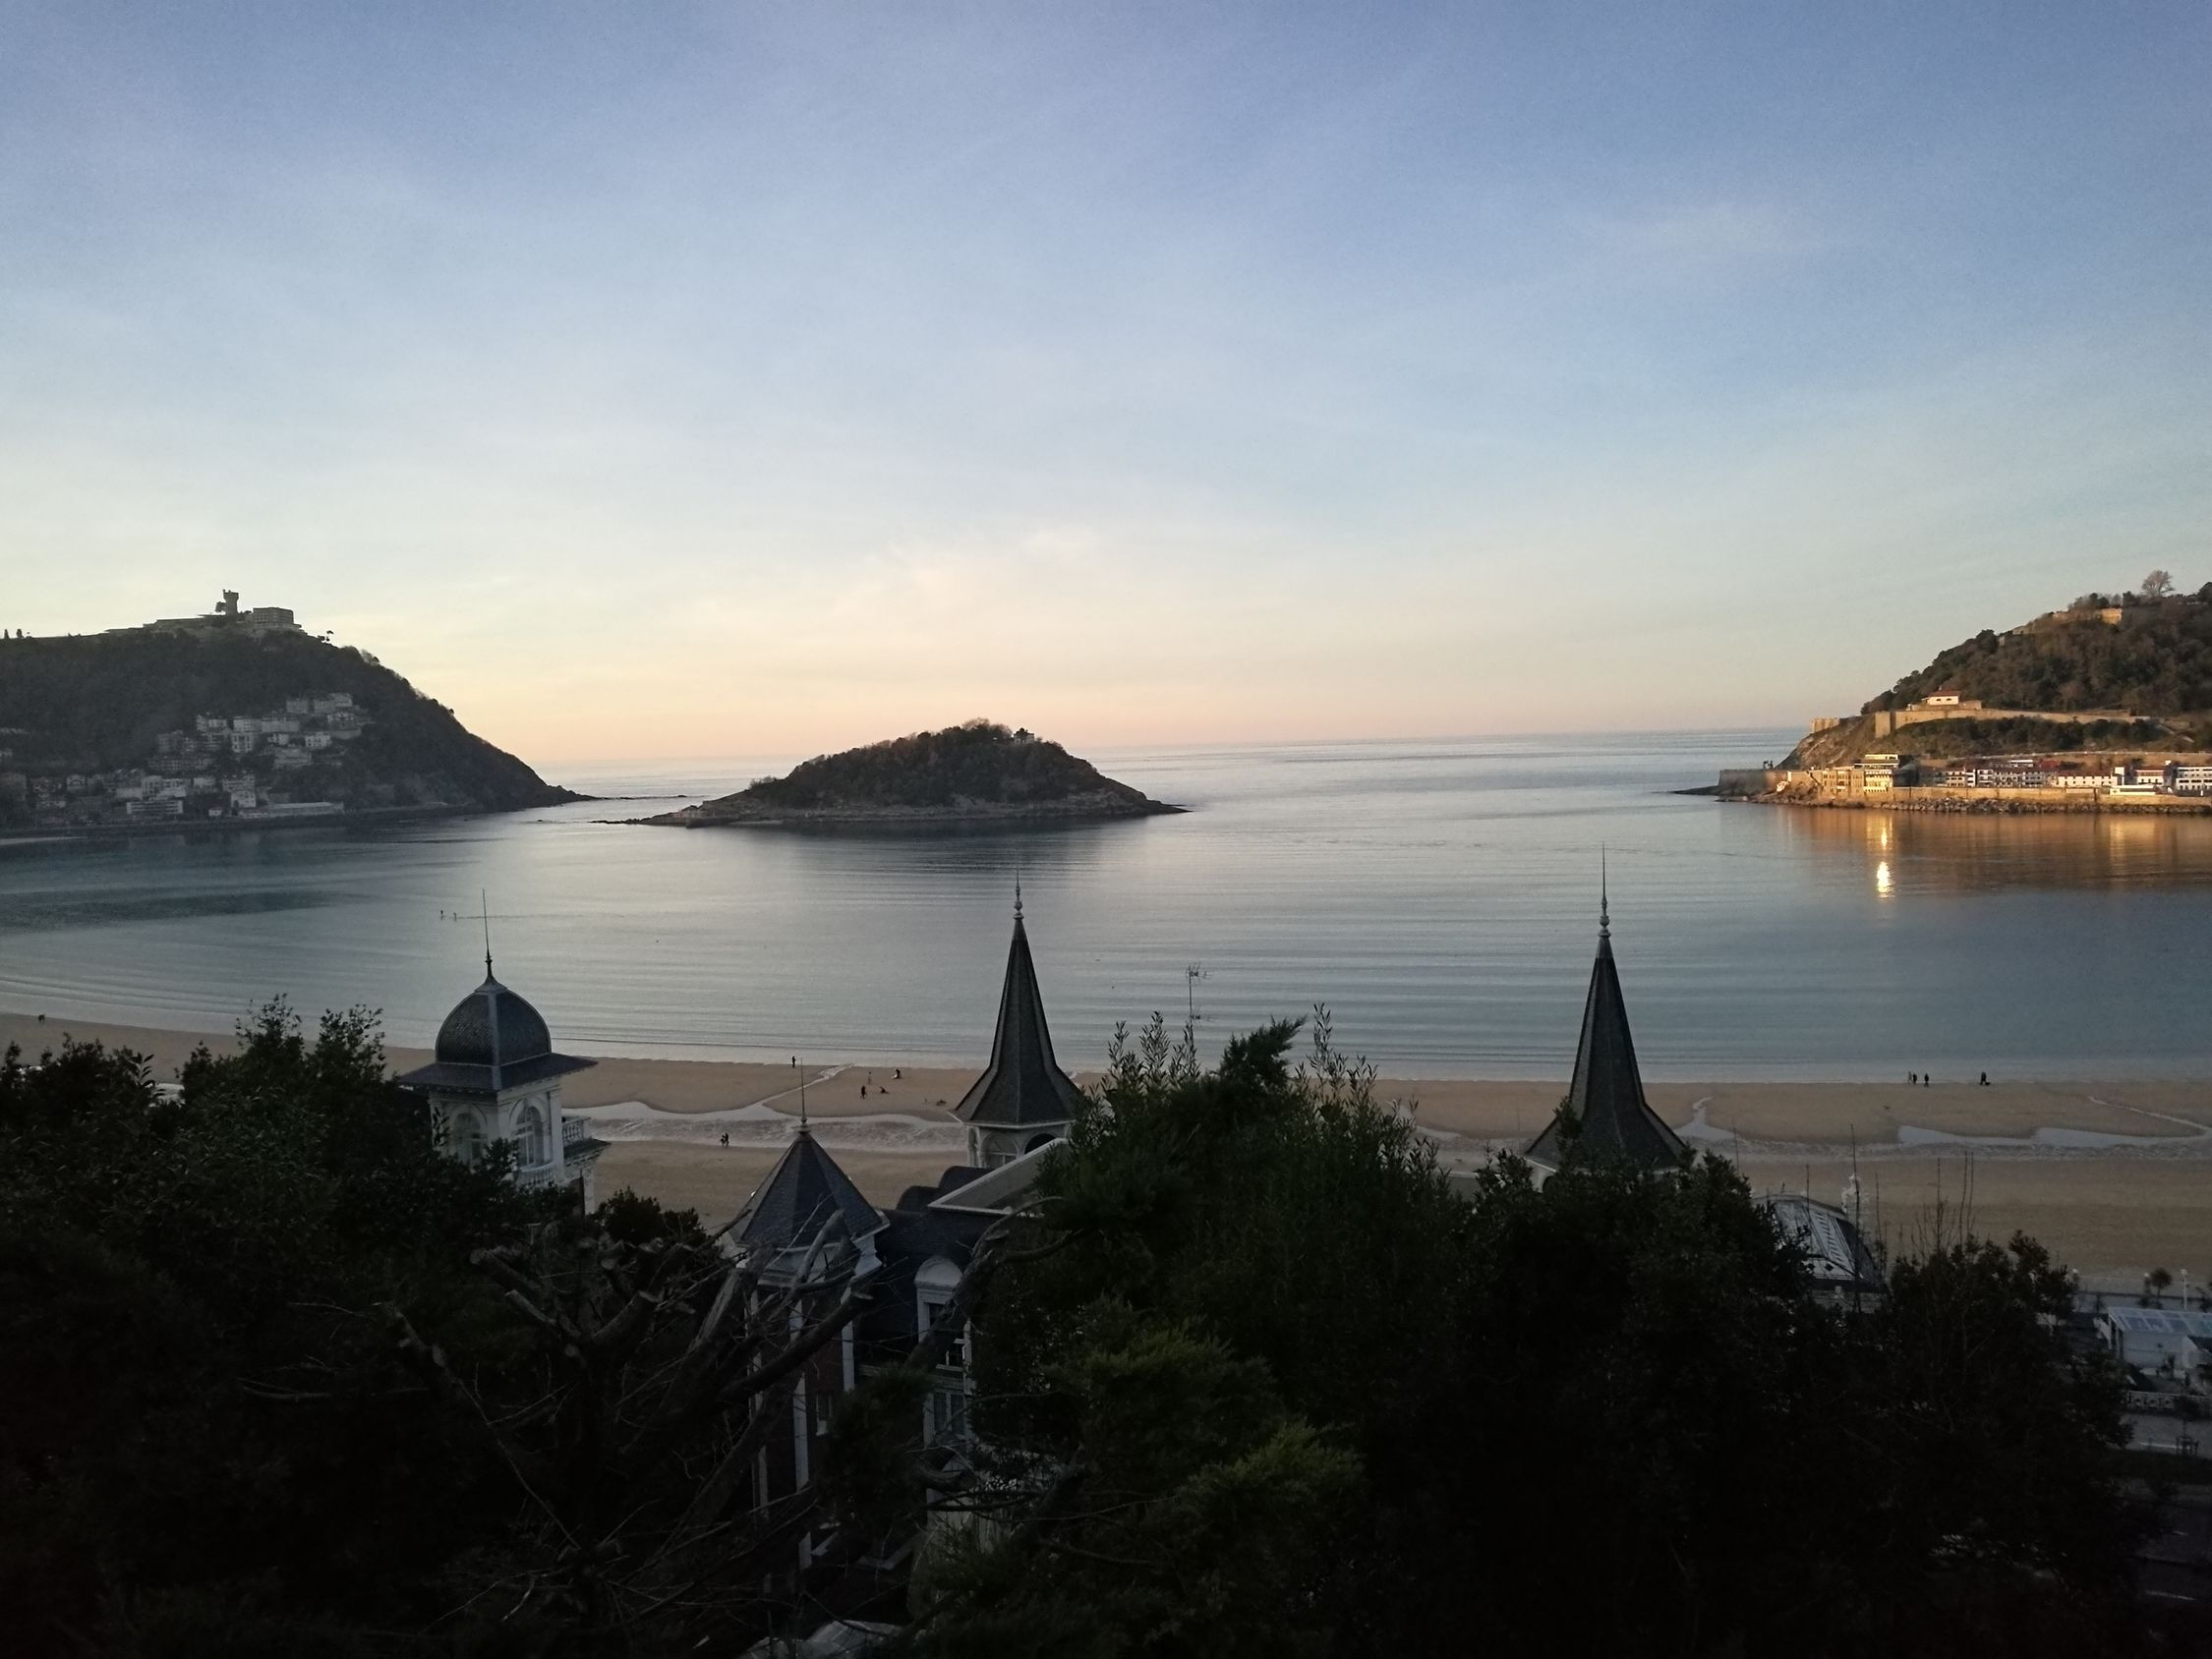 Donostia / San Sebastián Donosti  Donostiarra Sunset No People Beauty Water Sea Island City City Life Cityscape Cityscapes Beauty In Nature Beautiful Nature HuaweiP9 Donos Huaweiphotography Huawei P9 Leica Tree Scenics Outdoors Donos Euskadi EyEmNewHere